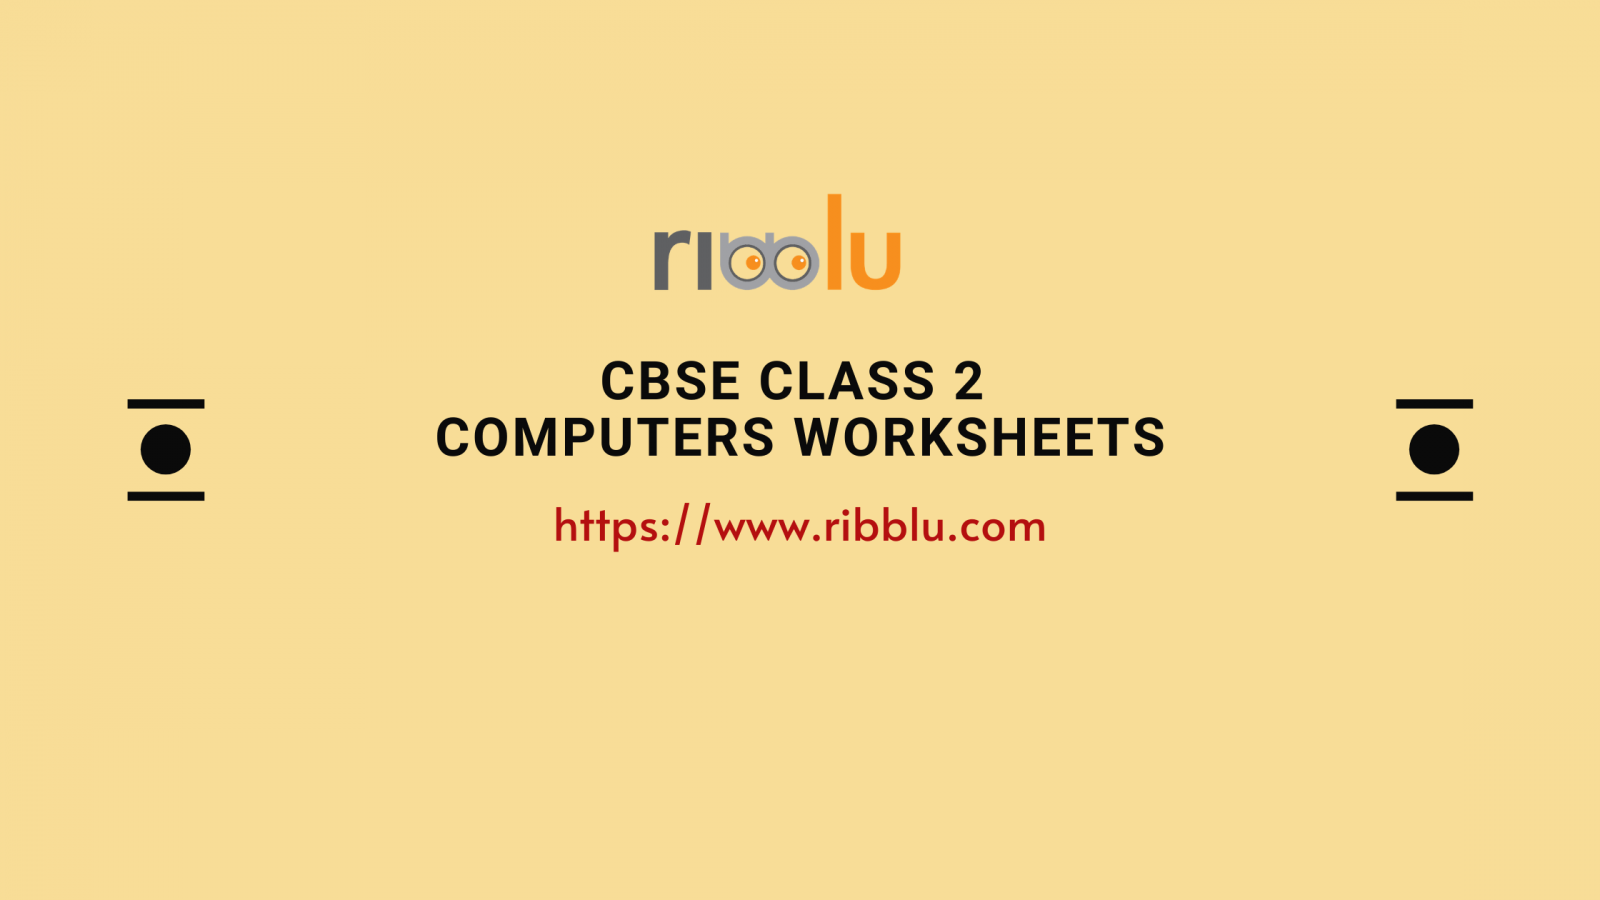 CBSE Class 2 Computers Worksheets